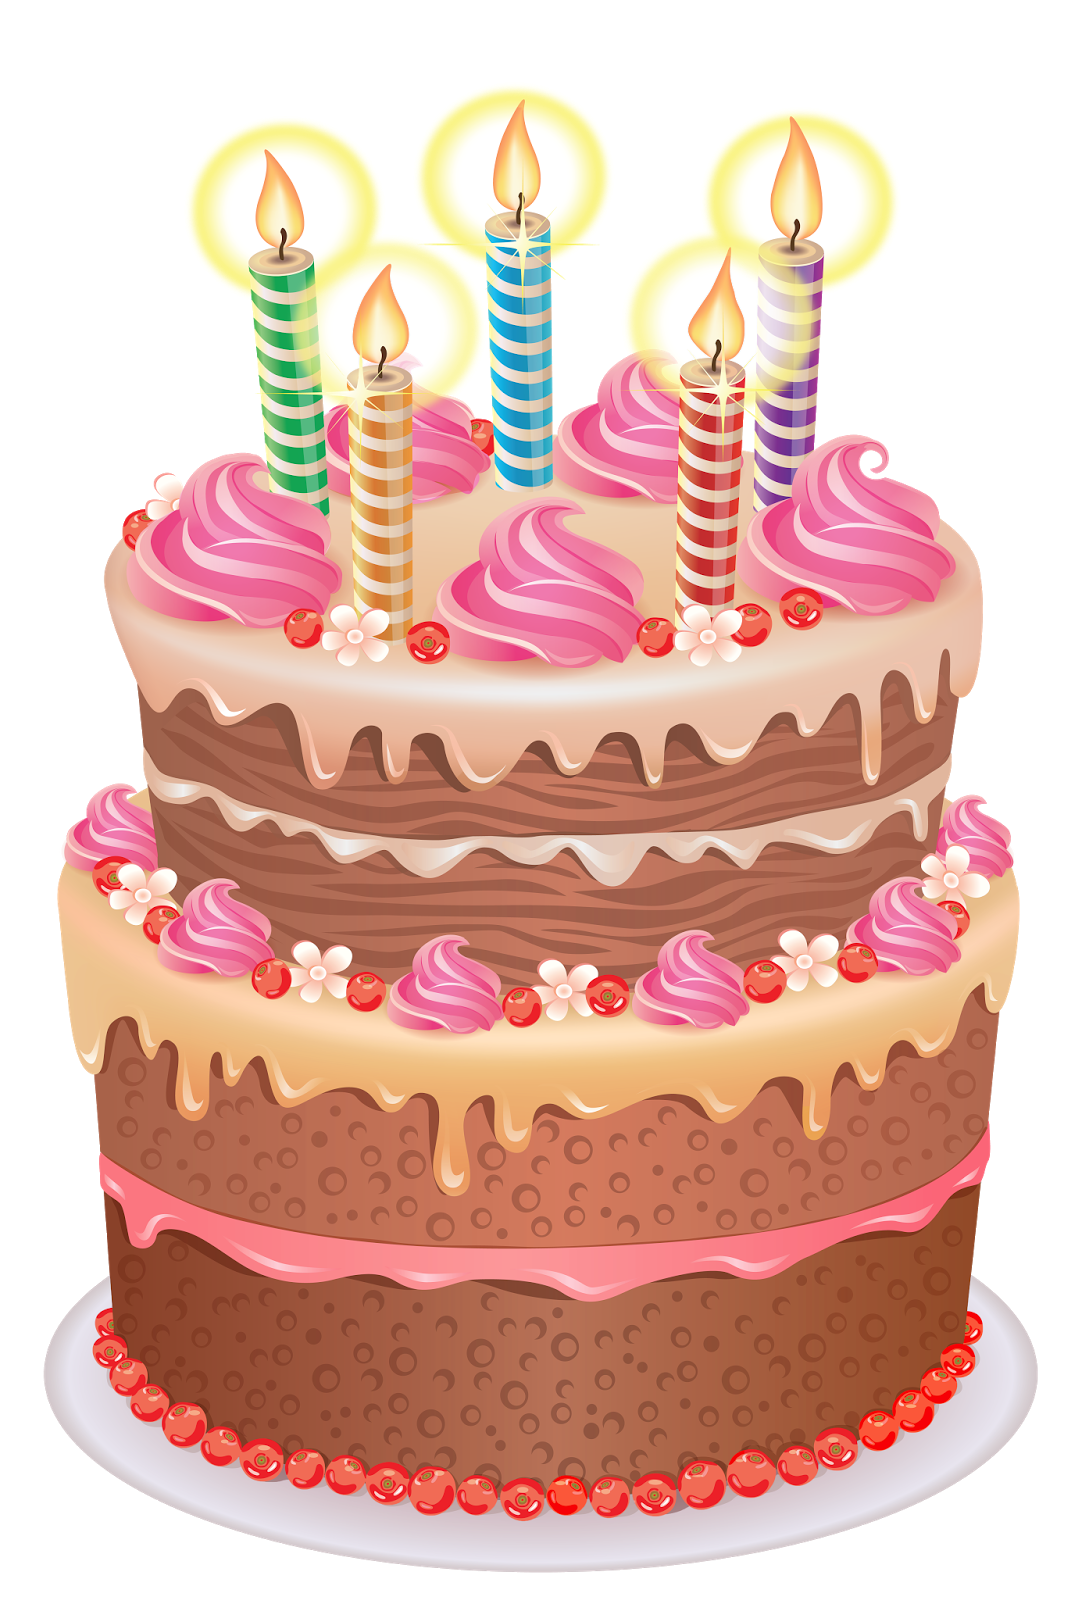 Happy birthday graphics clip. Congratulations clipart pink